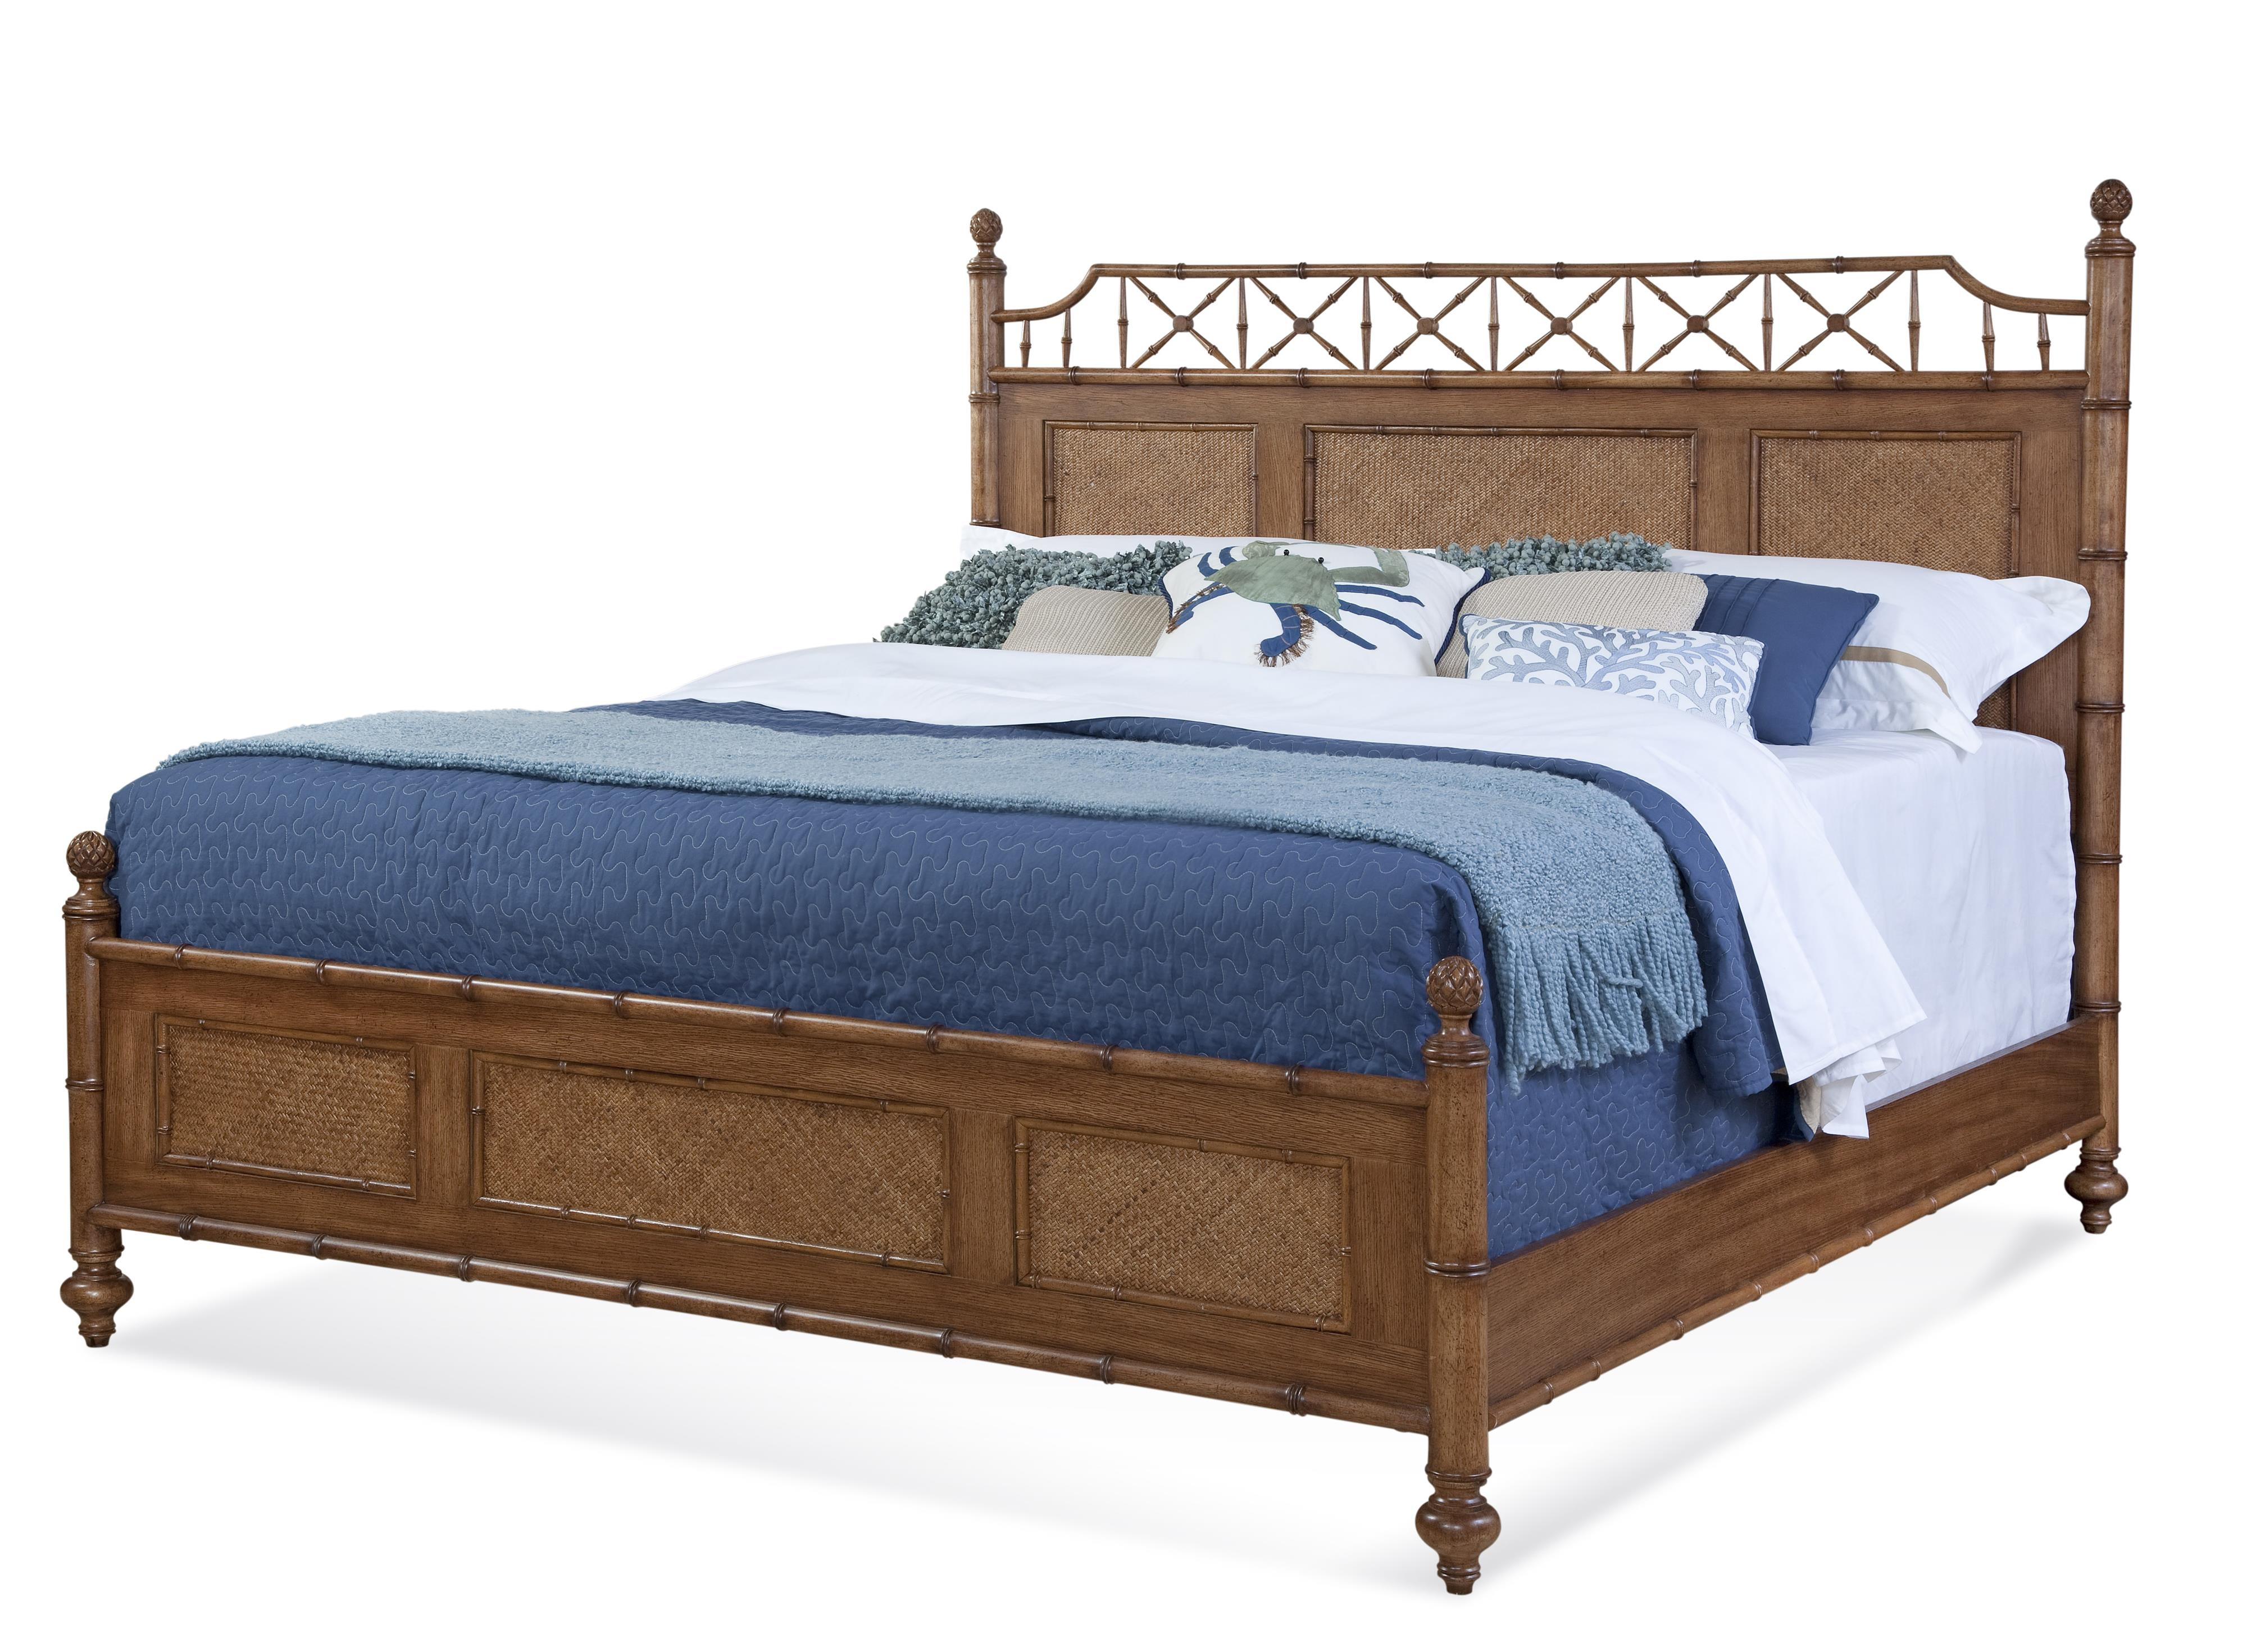 Lacquer Craft USA Paradise Bay King Bed - Item Number: 9005-155 PARADISE BAY